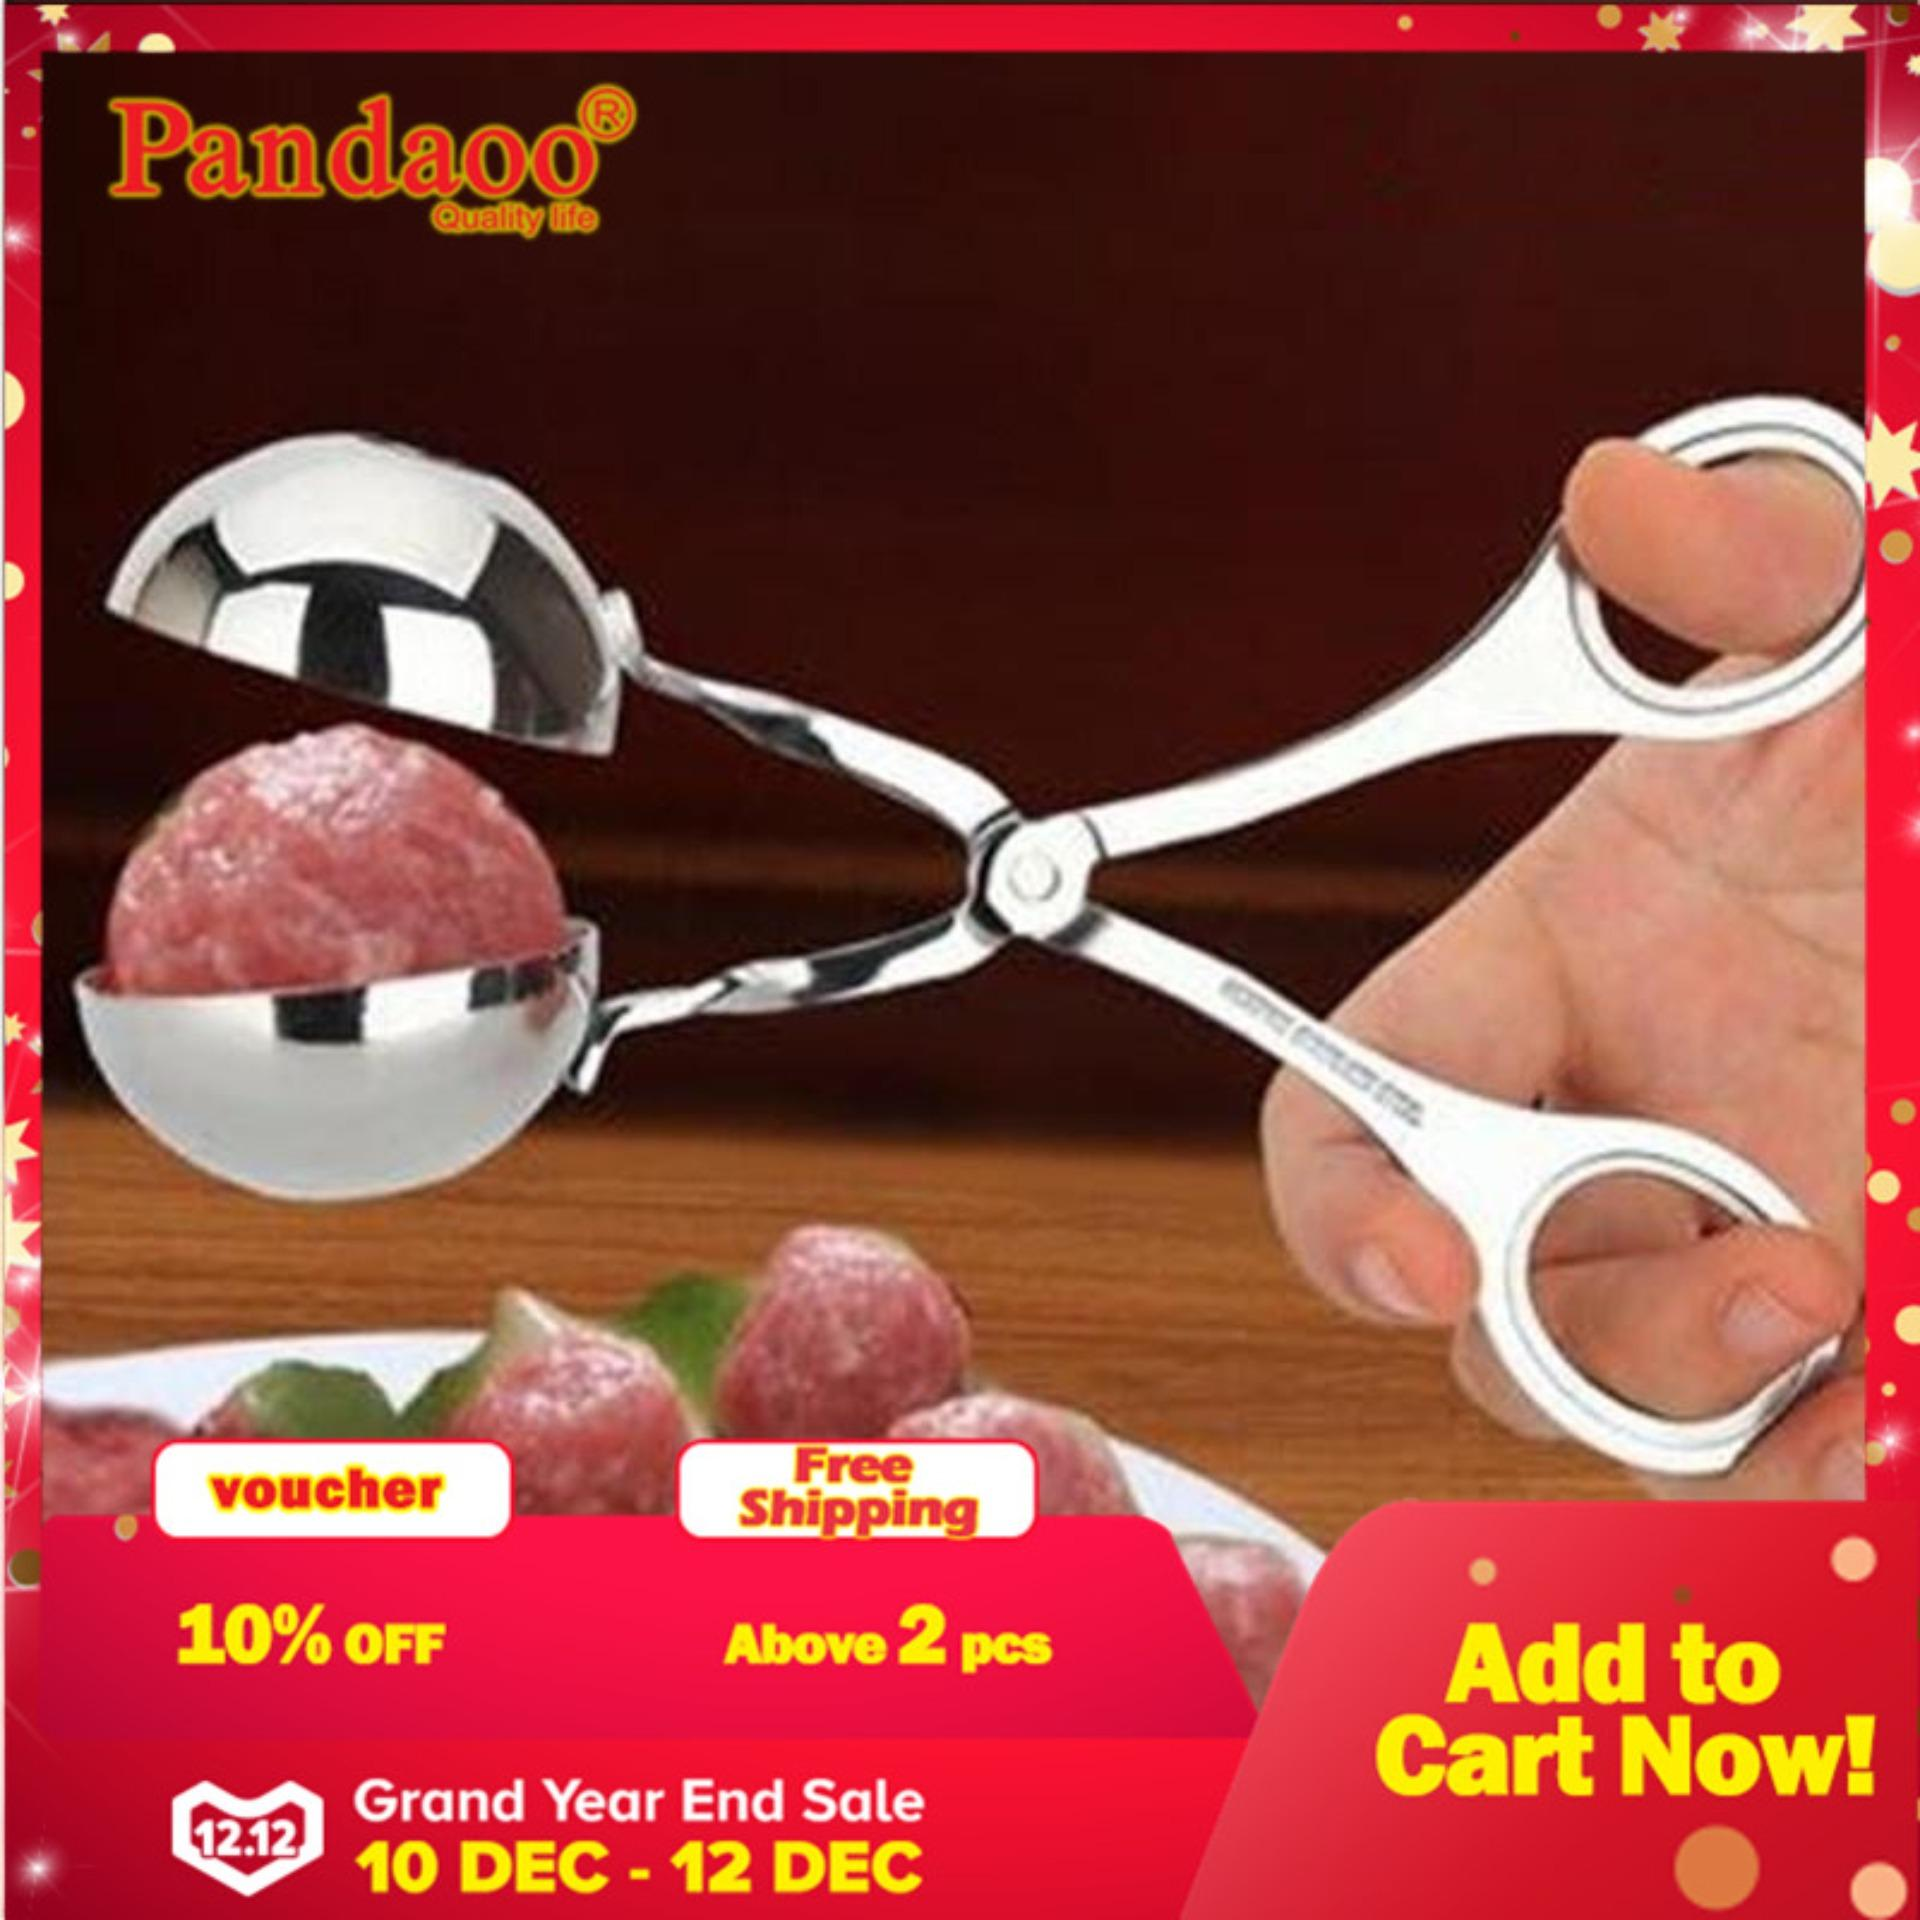 Non Stick Practical Meat Baller Cooking Tool Kitchen Meatball Scoop Ball Maker (xs Size: 3.3*3.3cm ) - Intl By Pandaoo Store.